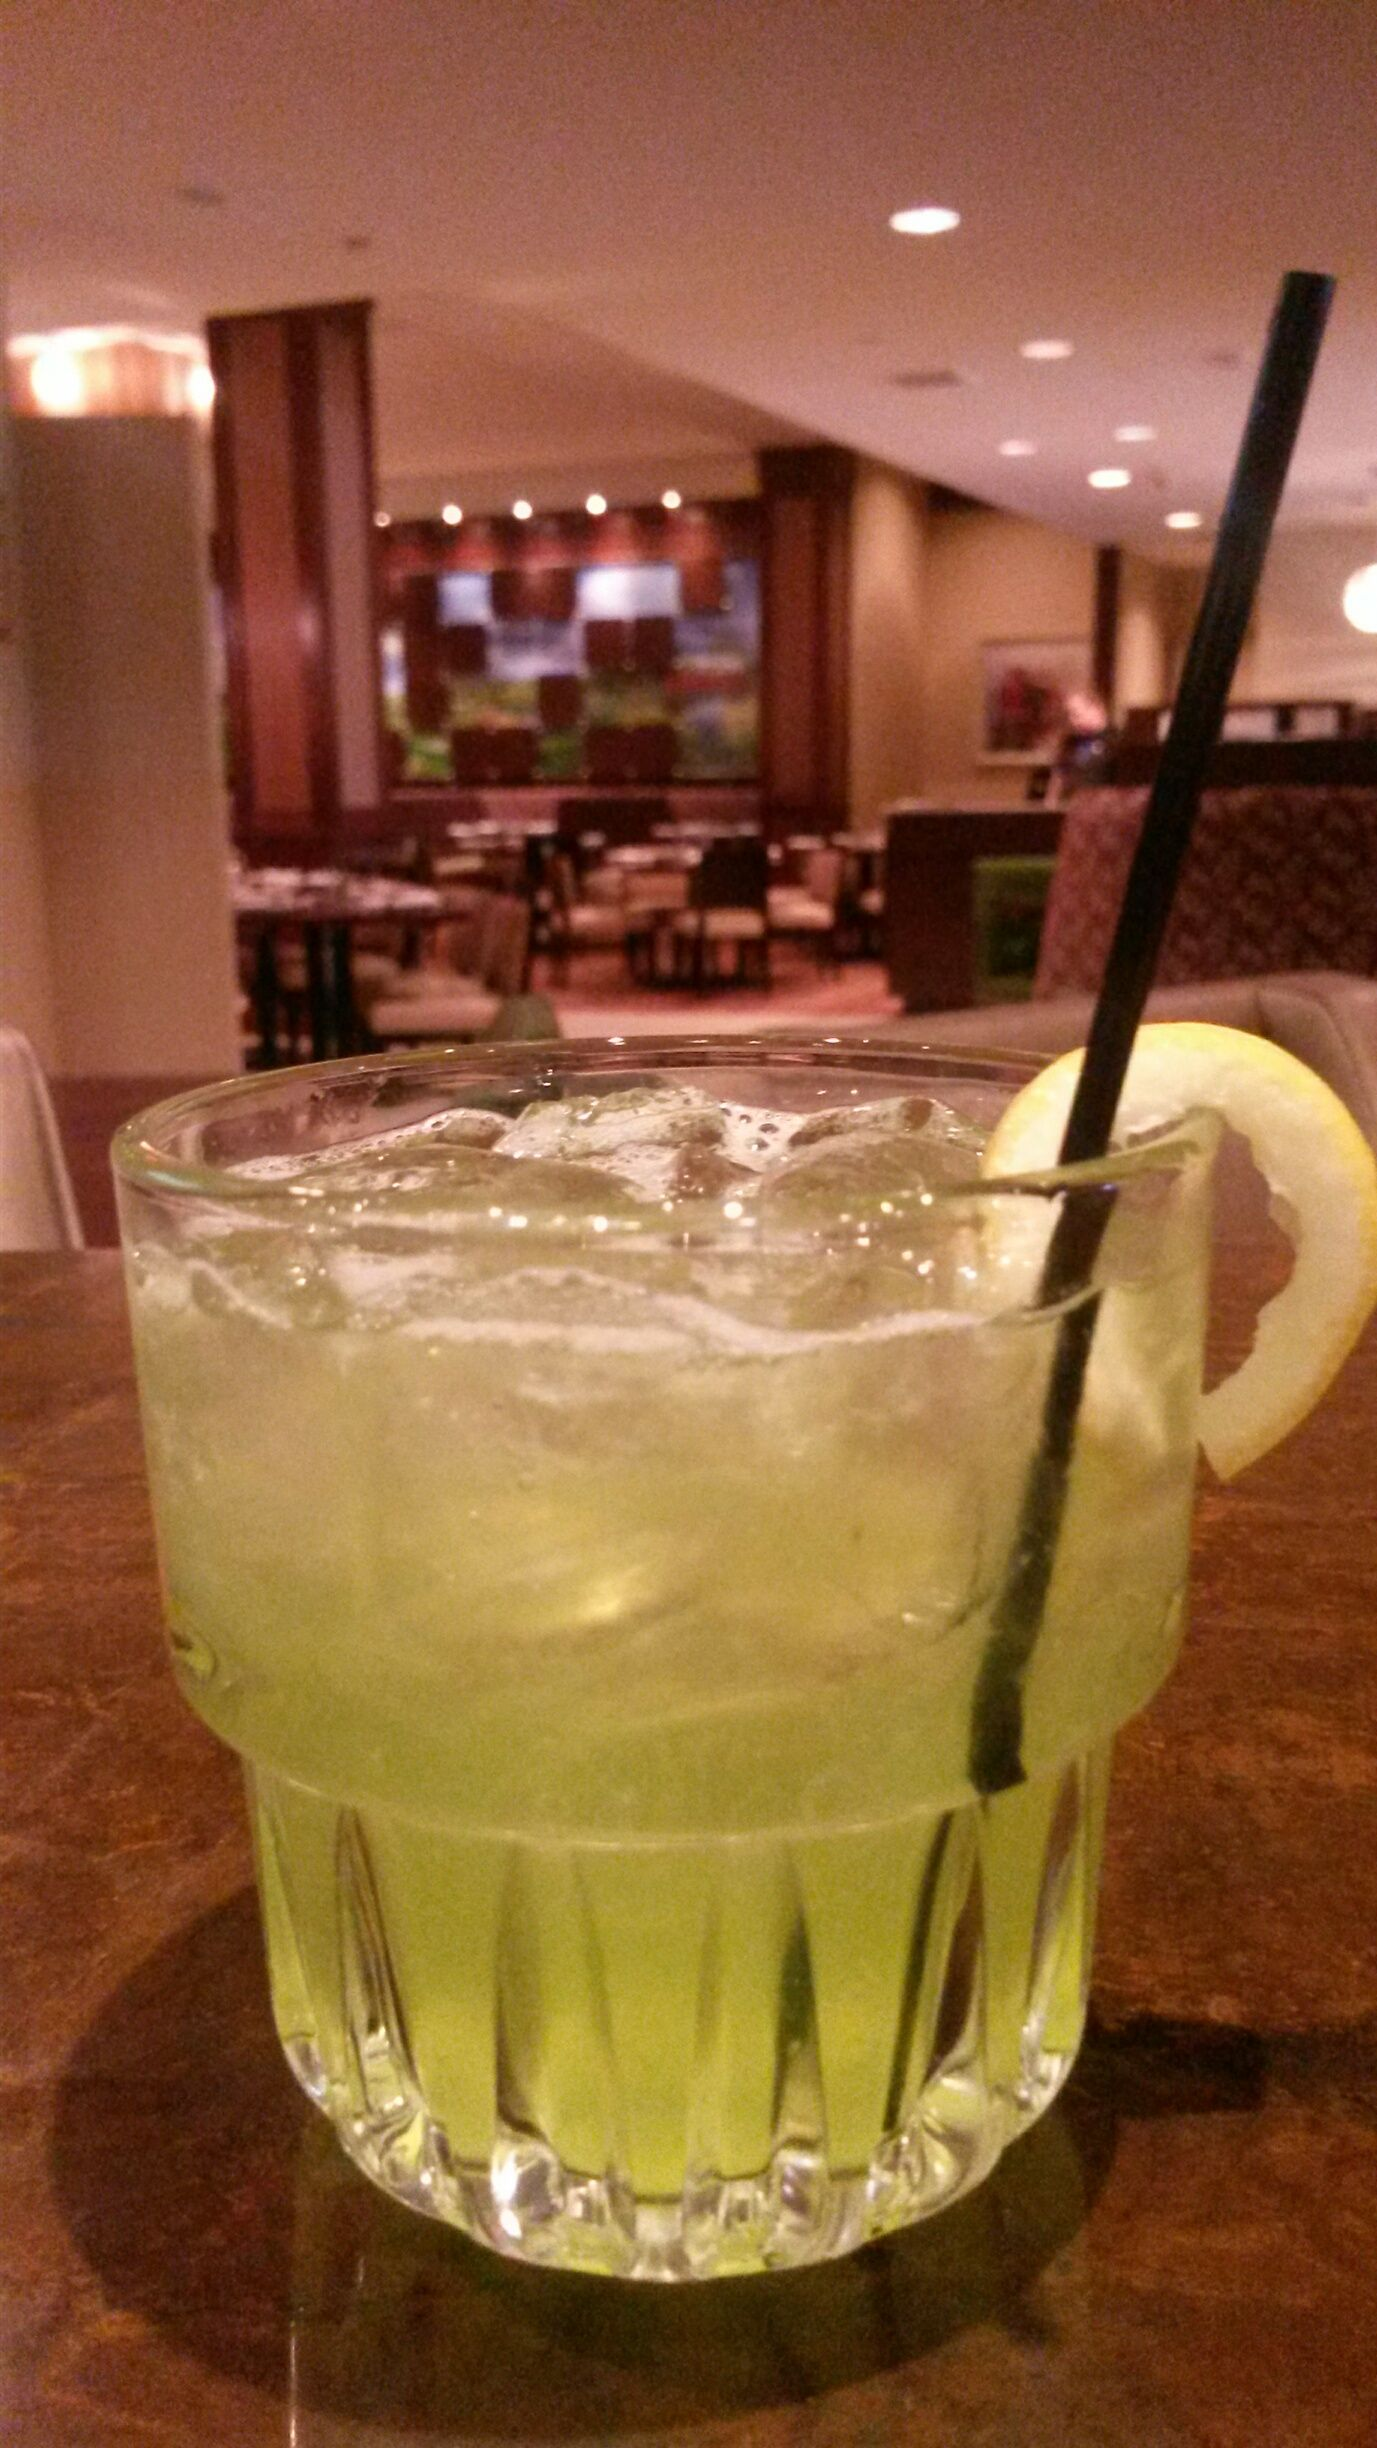 Two Rivers Grille ~ South Side Splash Cocktail Made With Green Tea Honey Midori And Local Broadbent Unaged Corn Whiskey From Norwalk Iowa And Lemon Twist